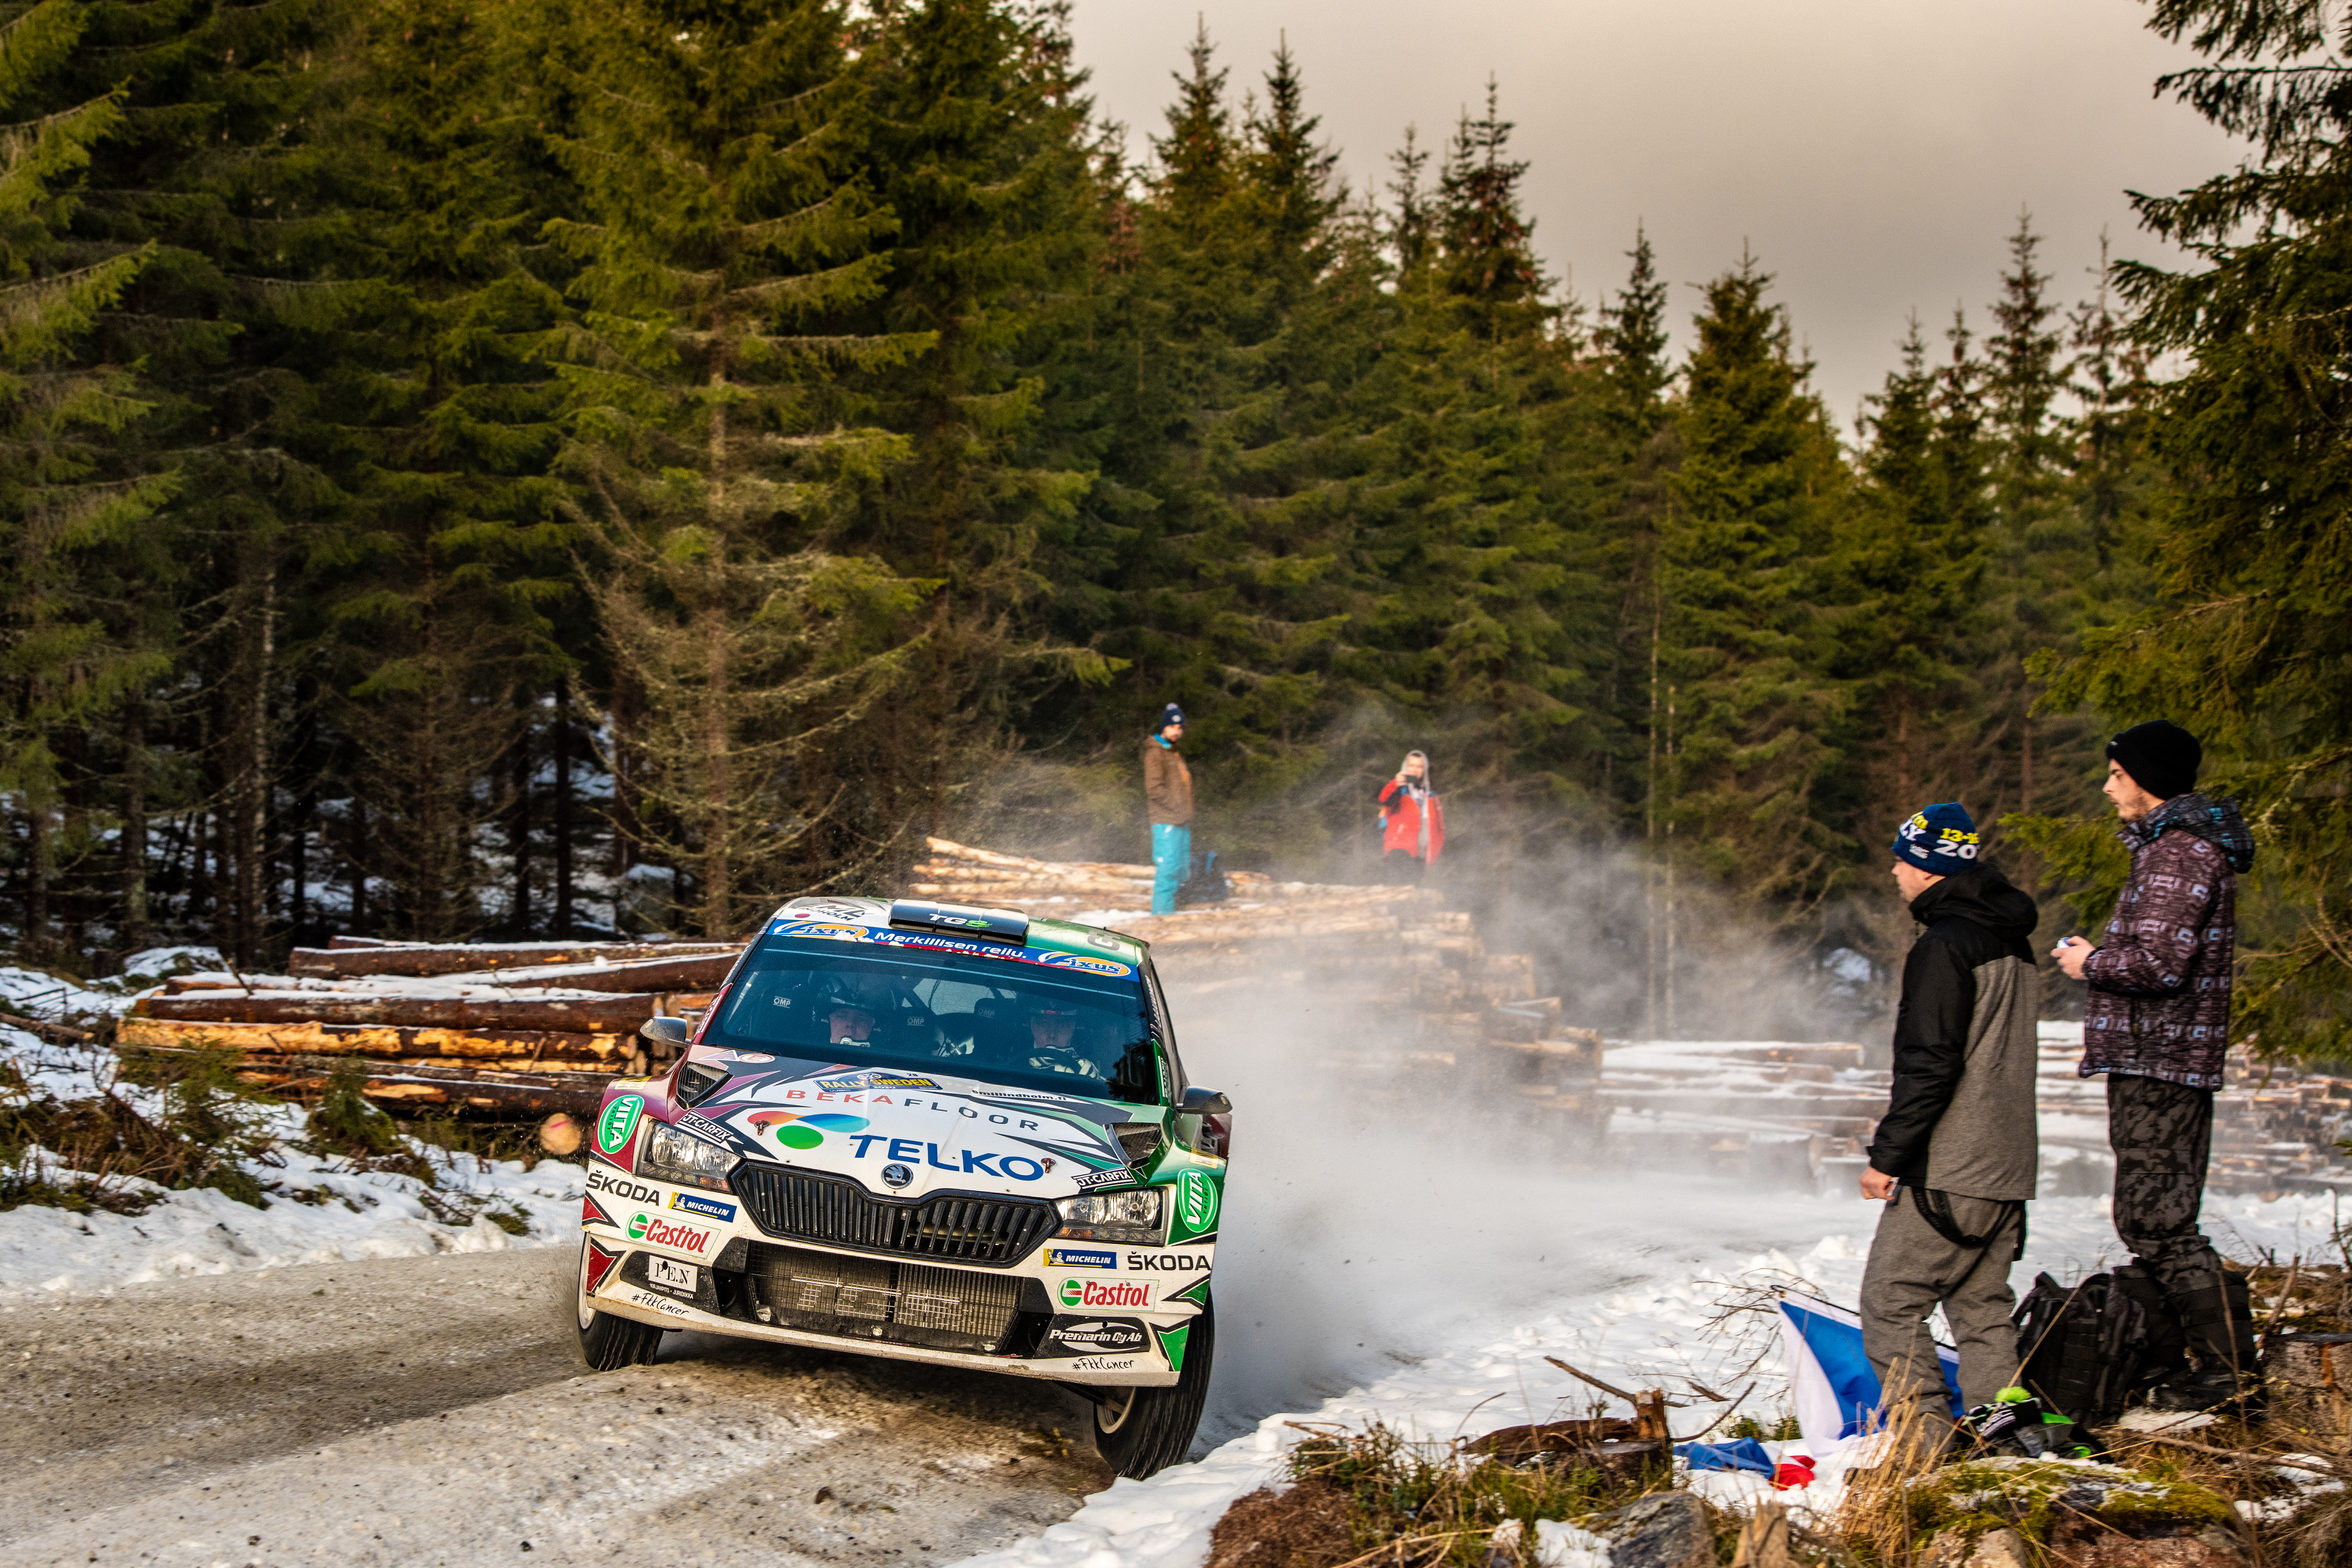 Rally Sweden/WRC3: SKODA privateer Lindholm in fight for victory – Solberg holds third at SKODA debut - Image 1